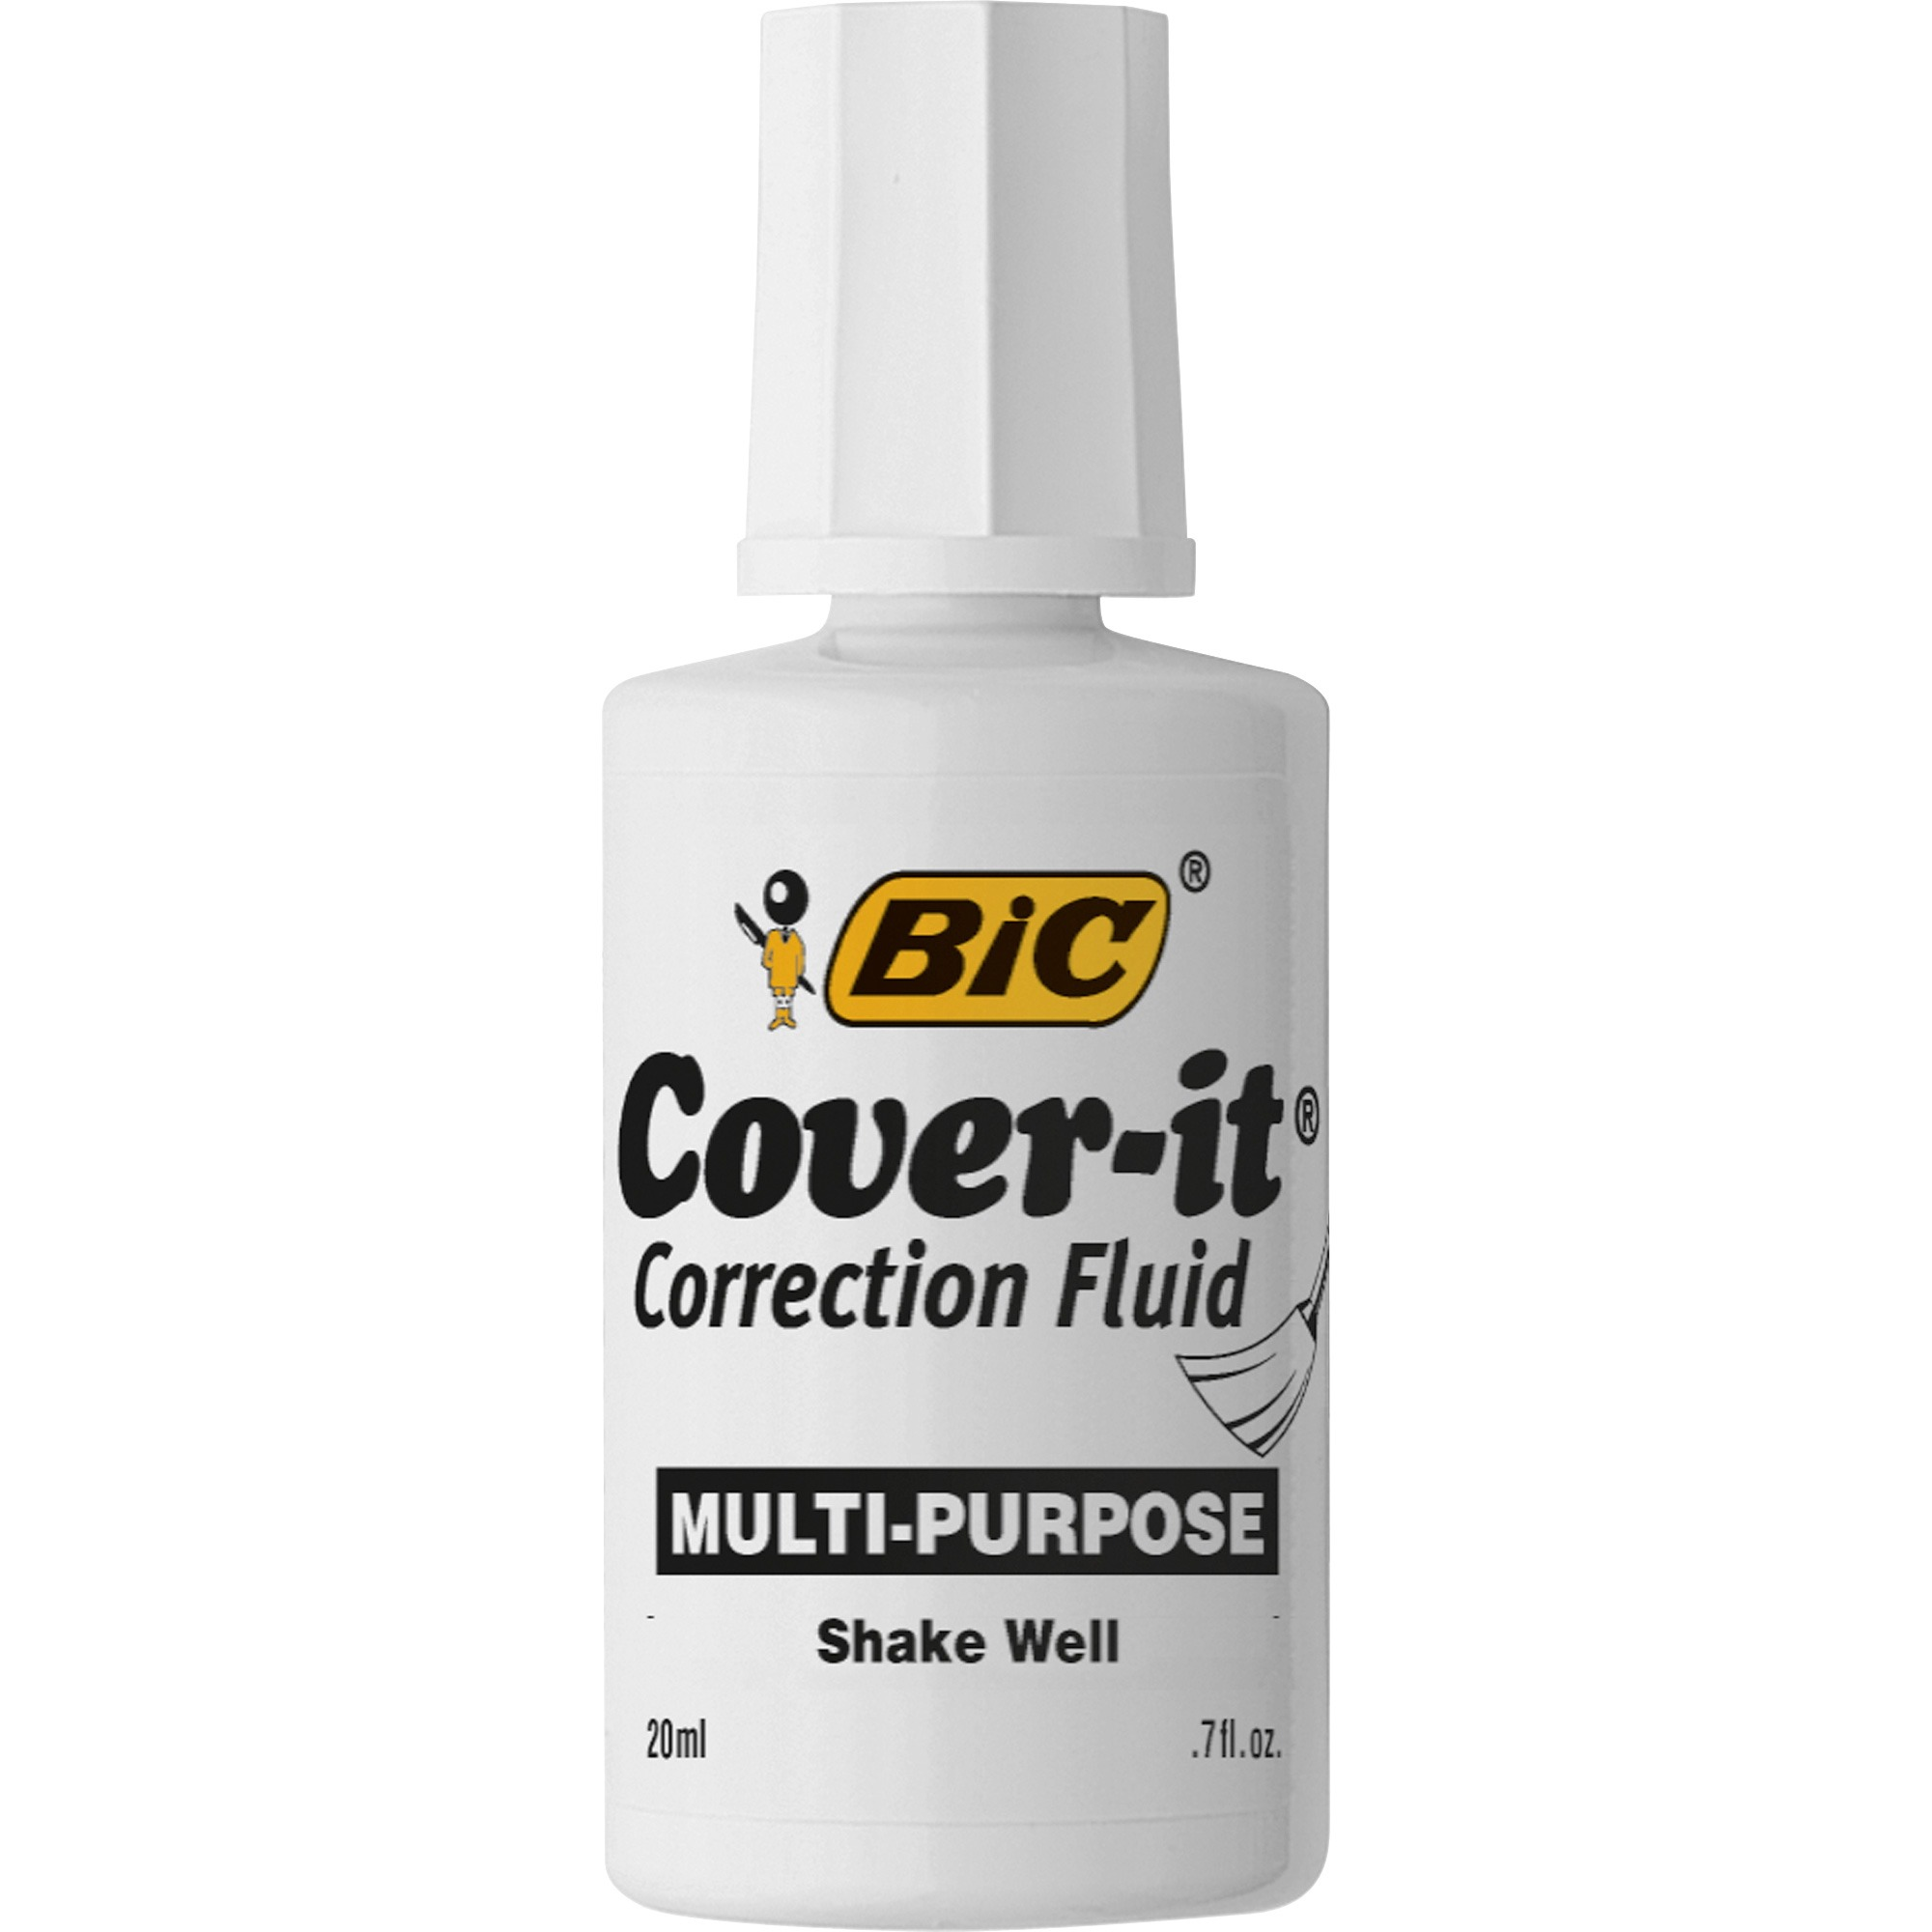 Wite-Out Cover-it Correction Fluid, 1 Dozen (Quantity)